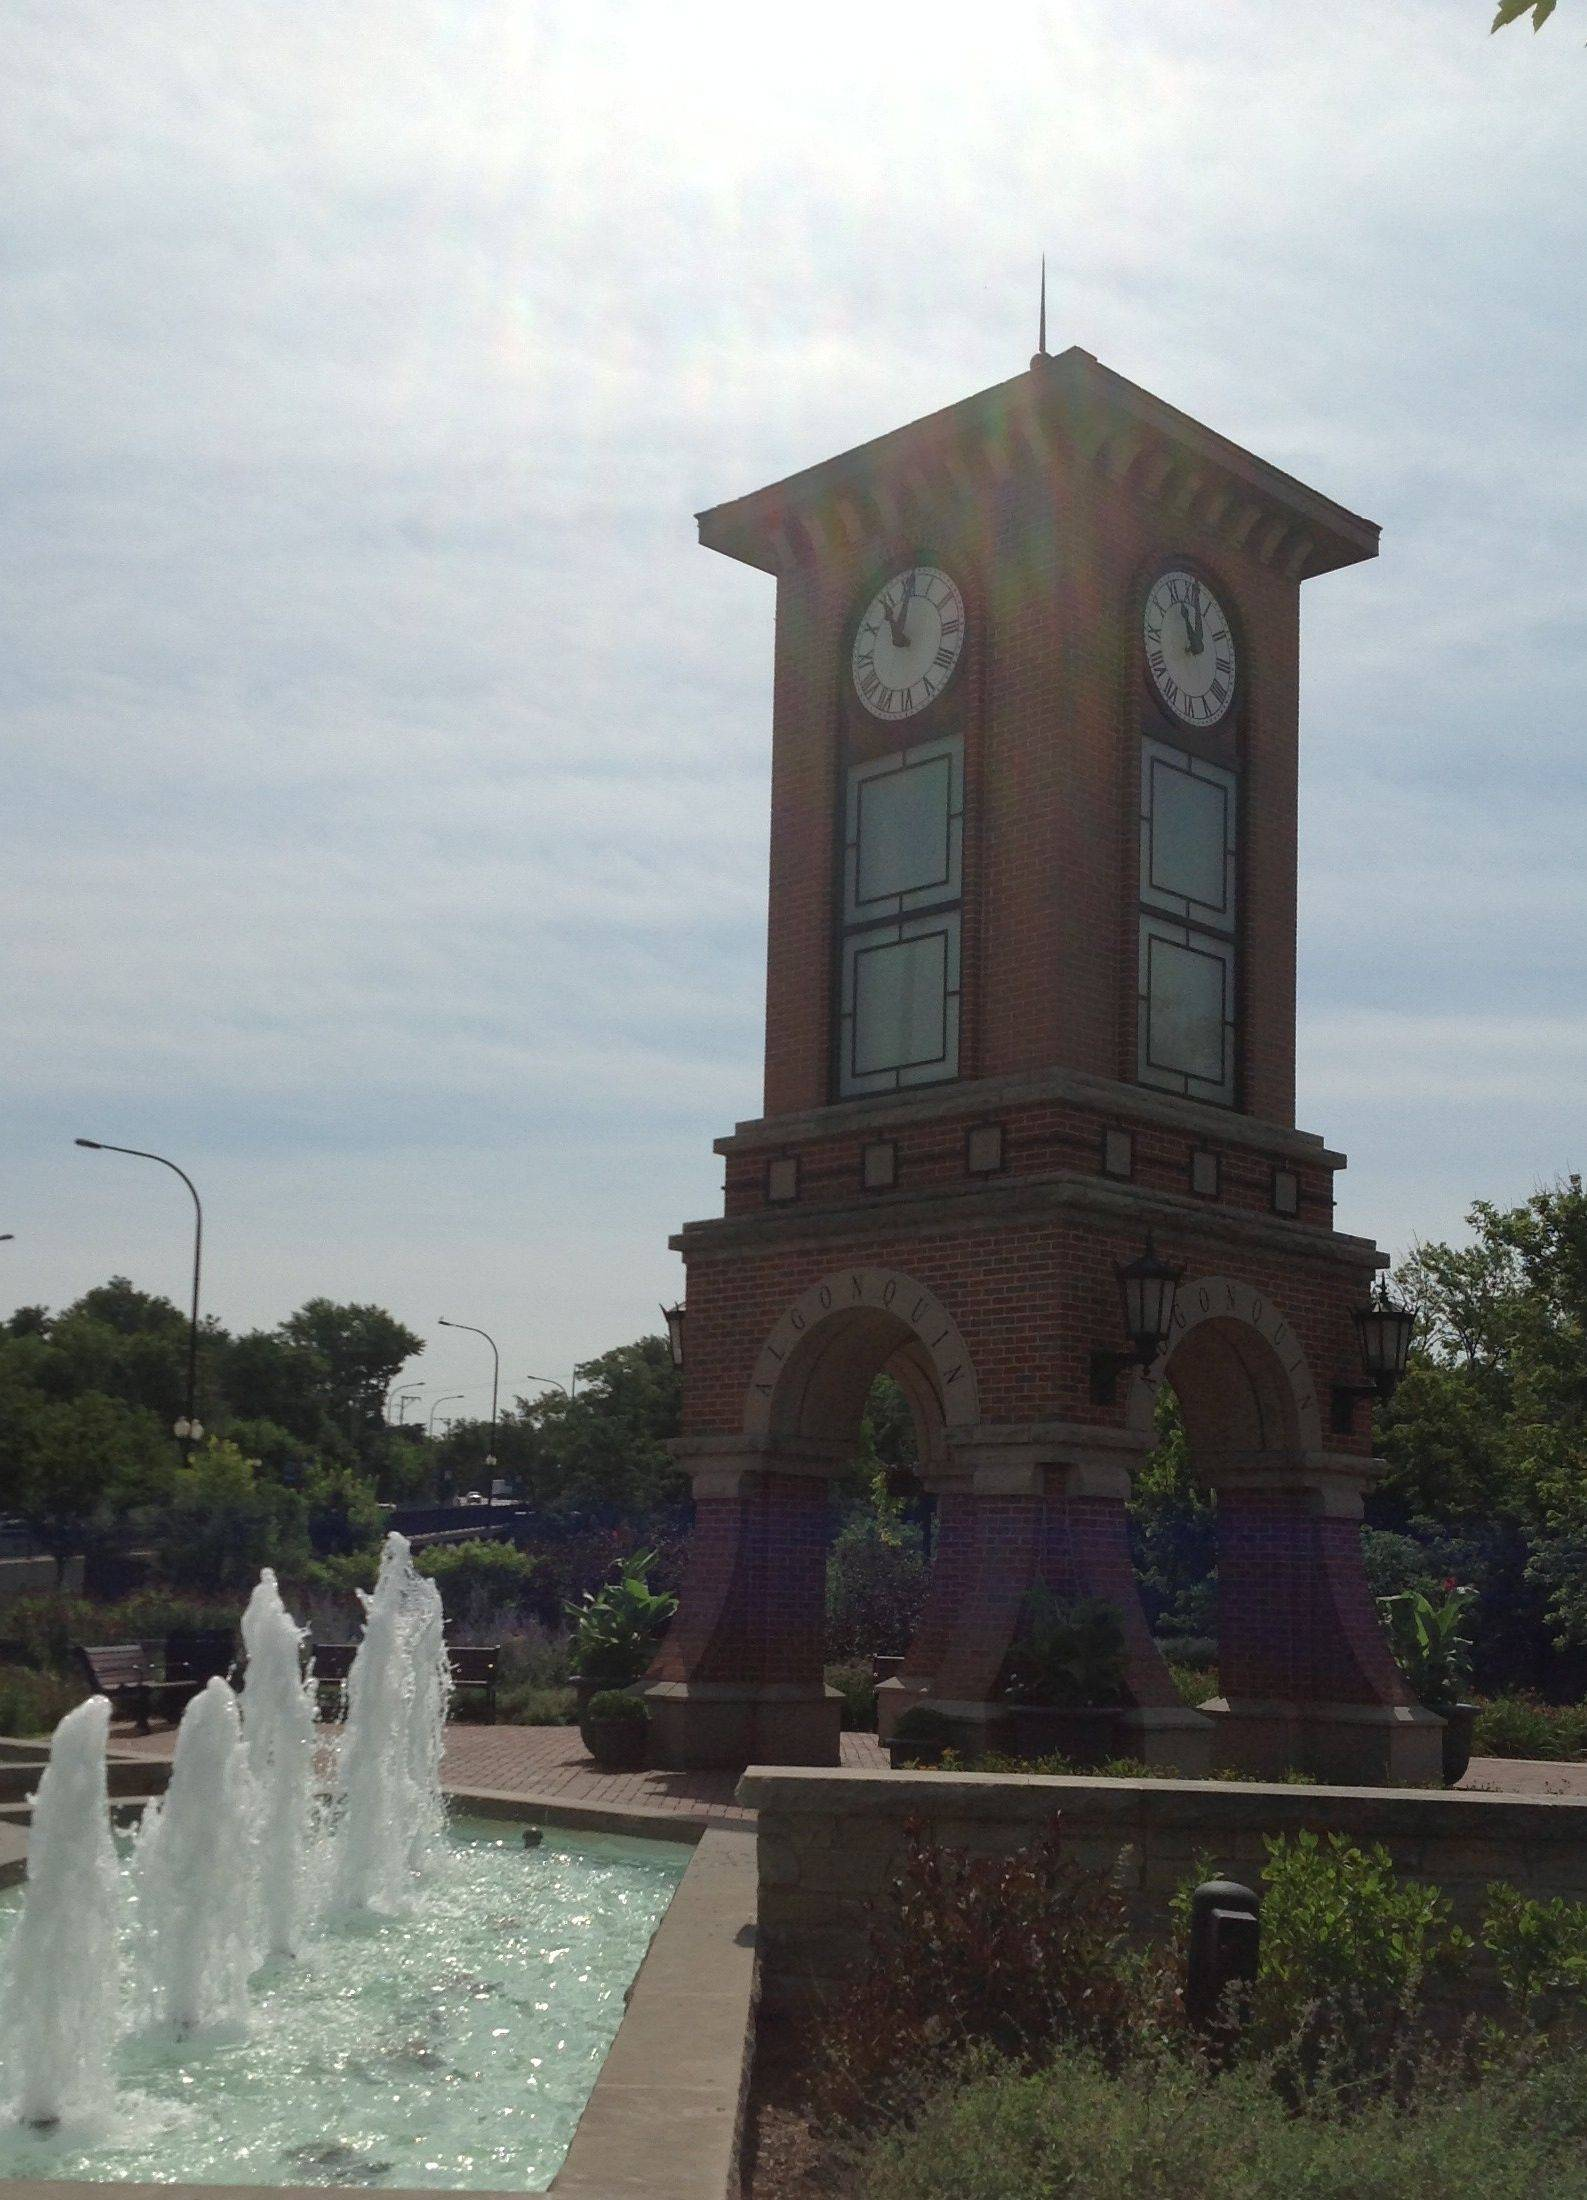 This clock tower in Cornish Park was inspired by another clock tower at Algonquin's historic village hall.